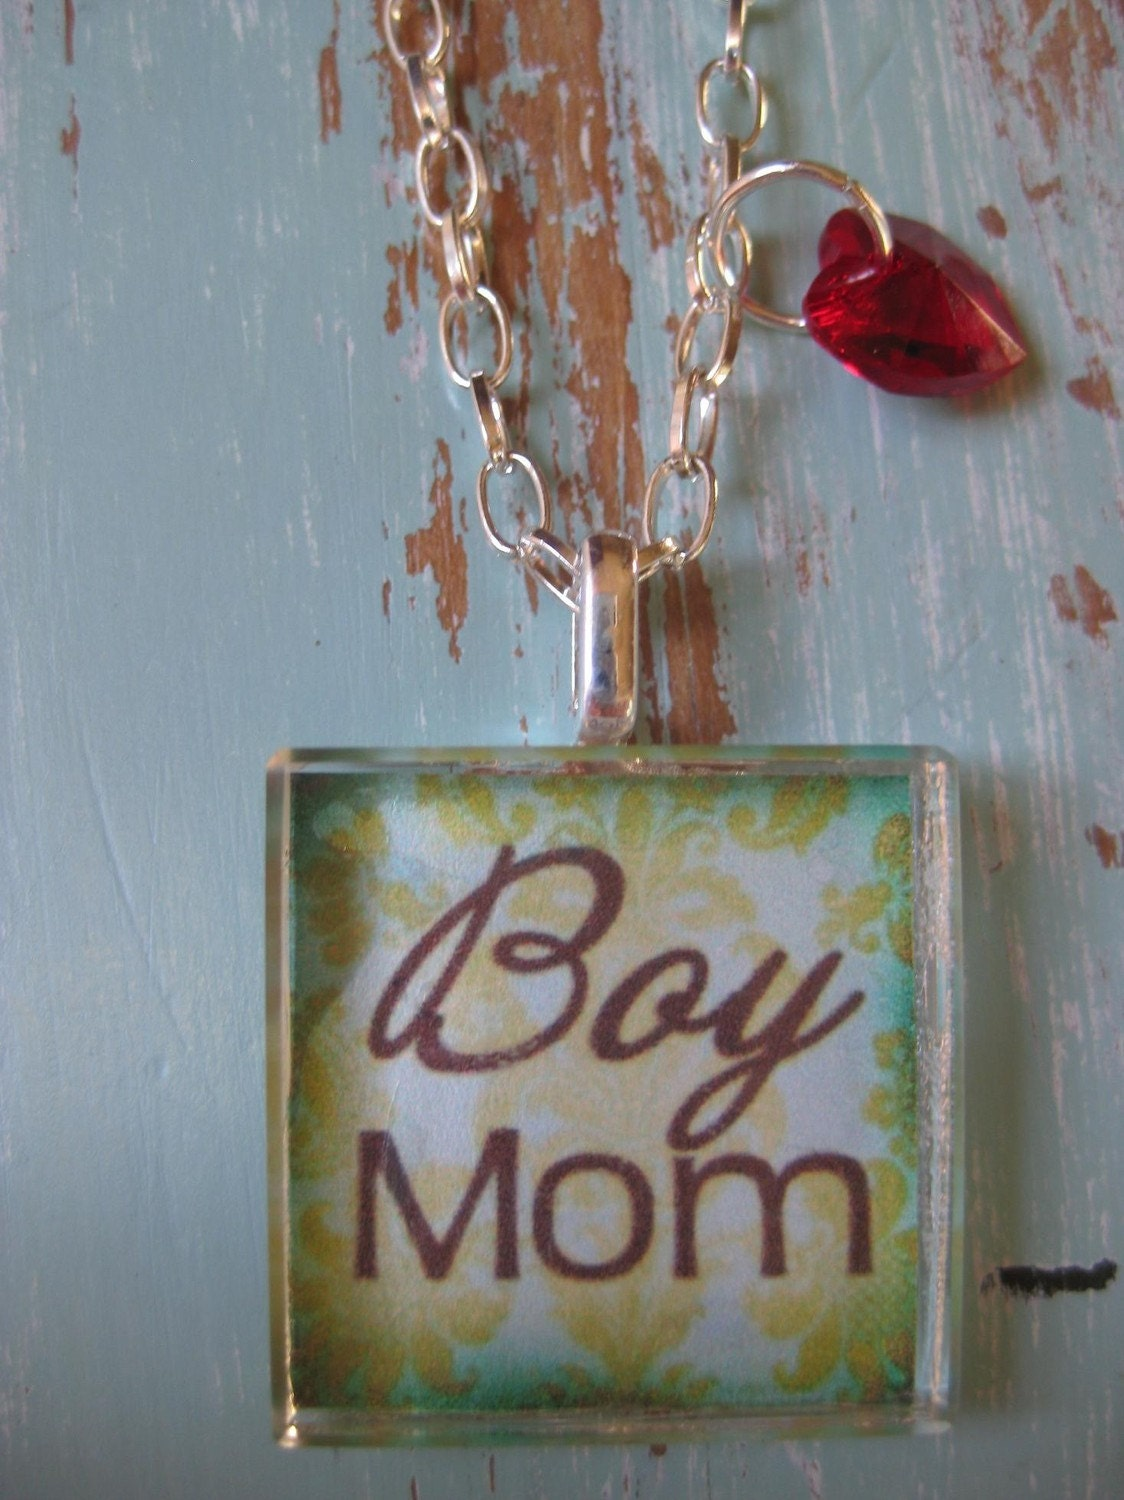 SALE - Boy Mom Necklace - FREE SHIPPING - Cut Crystal Glass Pendant - Aqua and Brown - Red Crystal Heart Toggle - Vintage - Chic and Unique by TakeFlightBoutique on Etsy